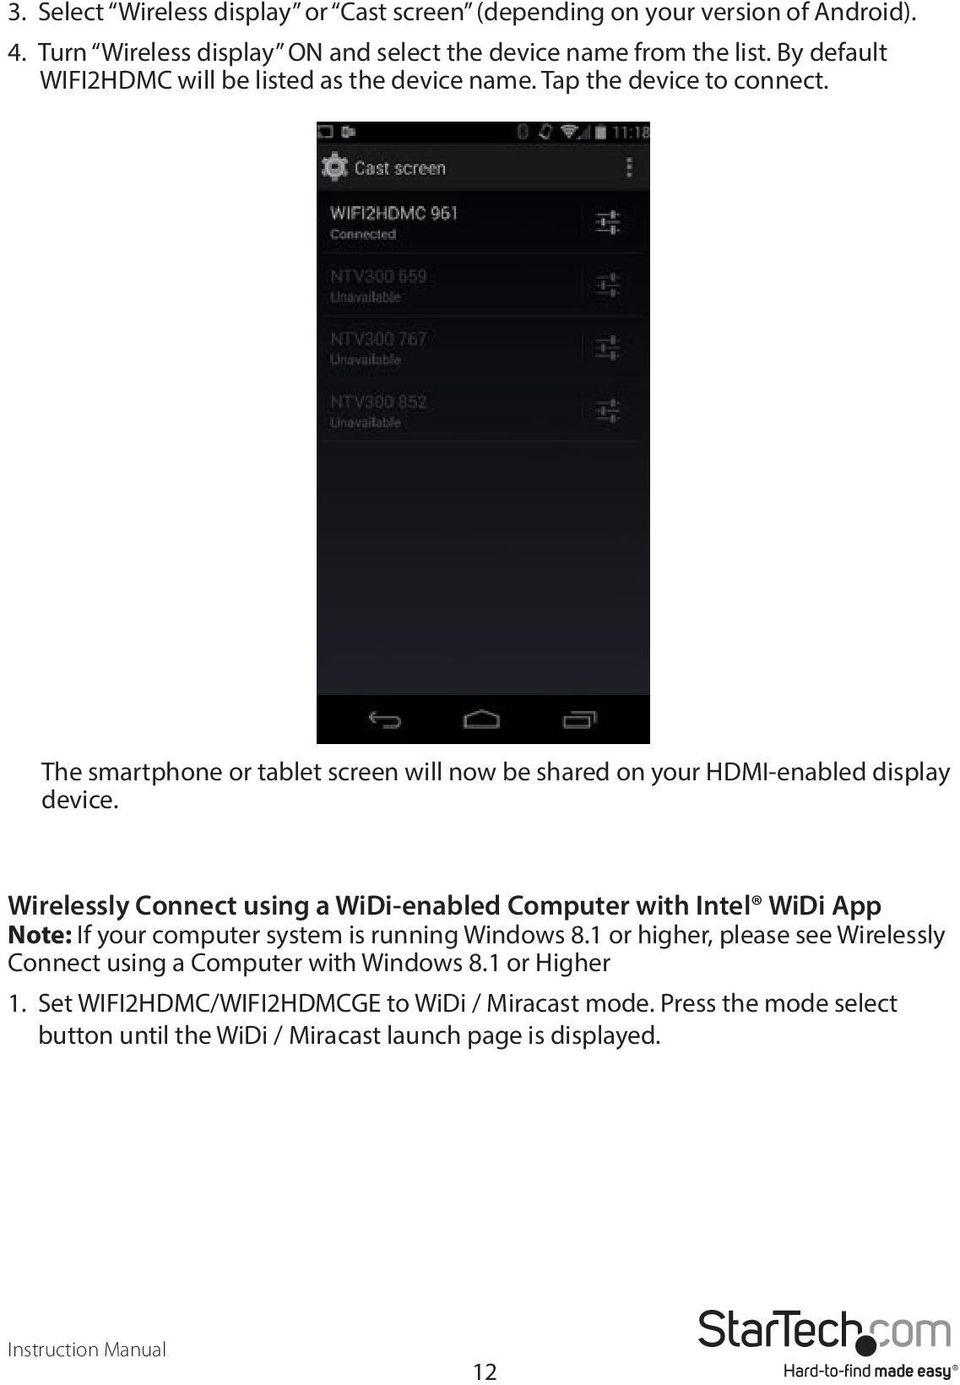 The smartphone or tablet screen will now be shared on your HDMI-enabled display device.